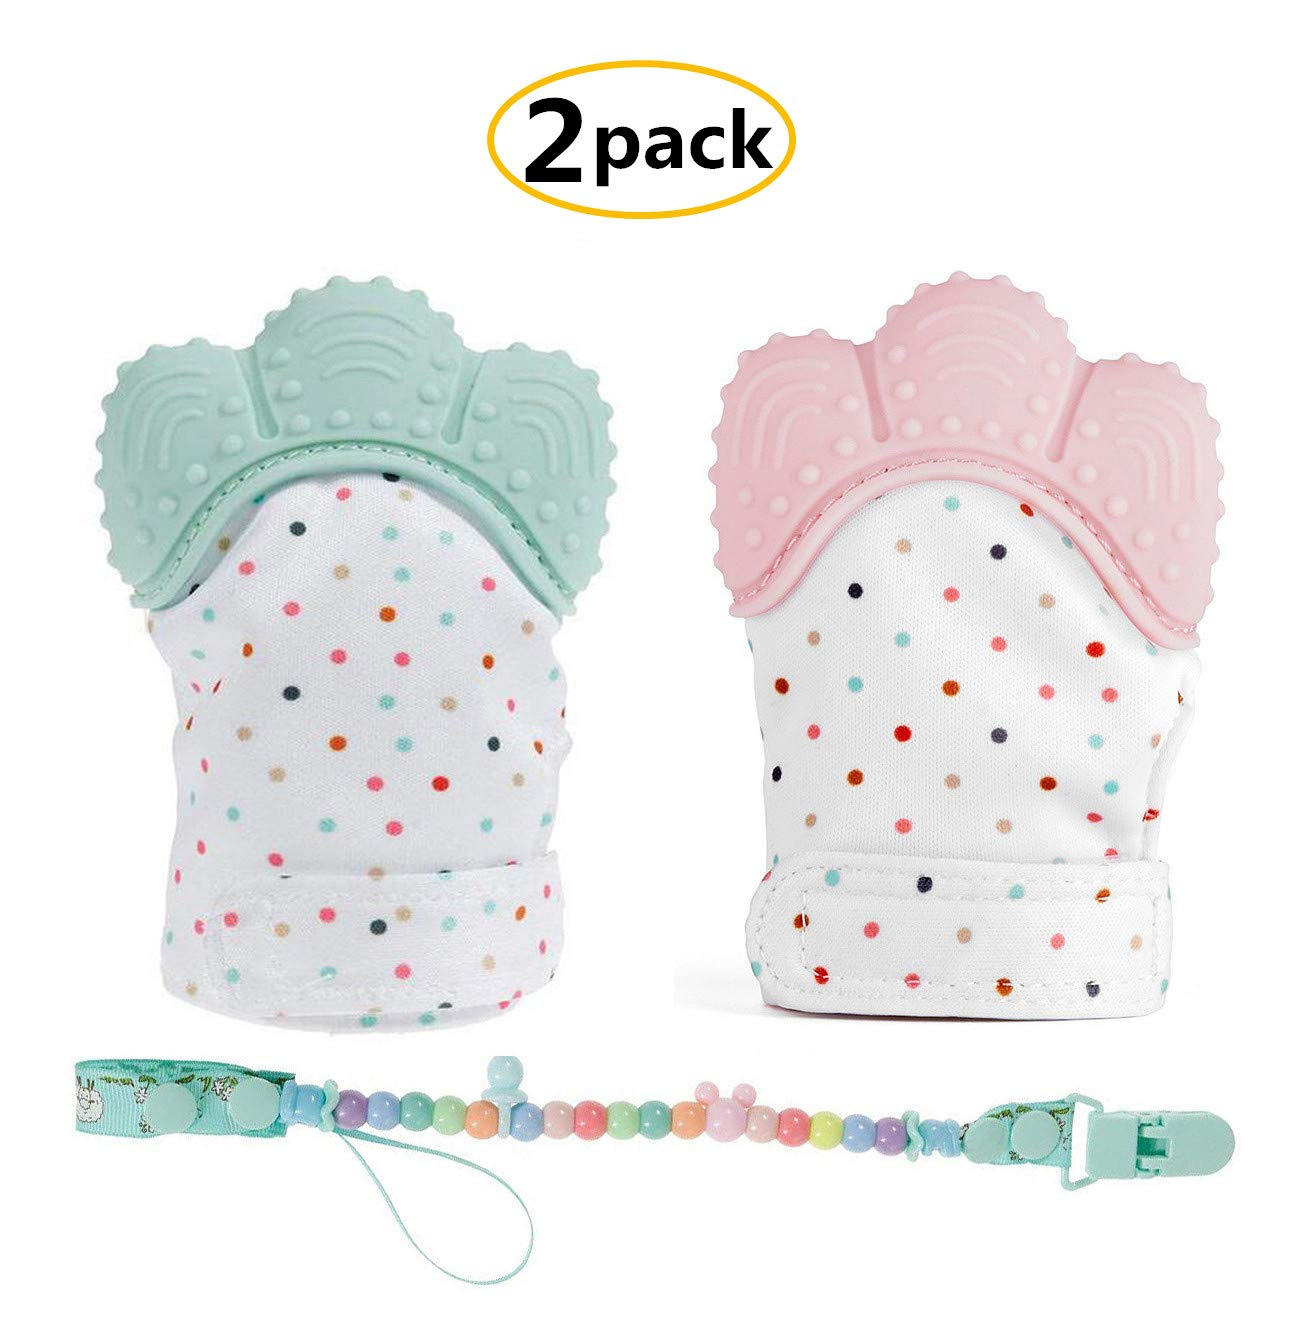 HBONE BPA FREE 2 Packs Baby Teething Mitten Soother Silicone Glove Chewing Toys for Babies 3-18 Months, Baby Munch Mitten Teether Teeth Grading Toy, Supports Self-Soothing Fun -Pain Relief